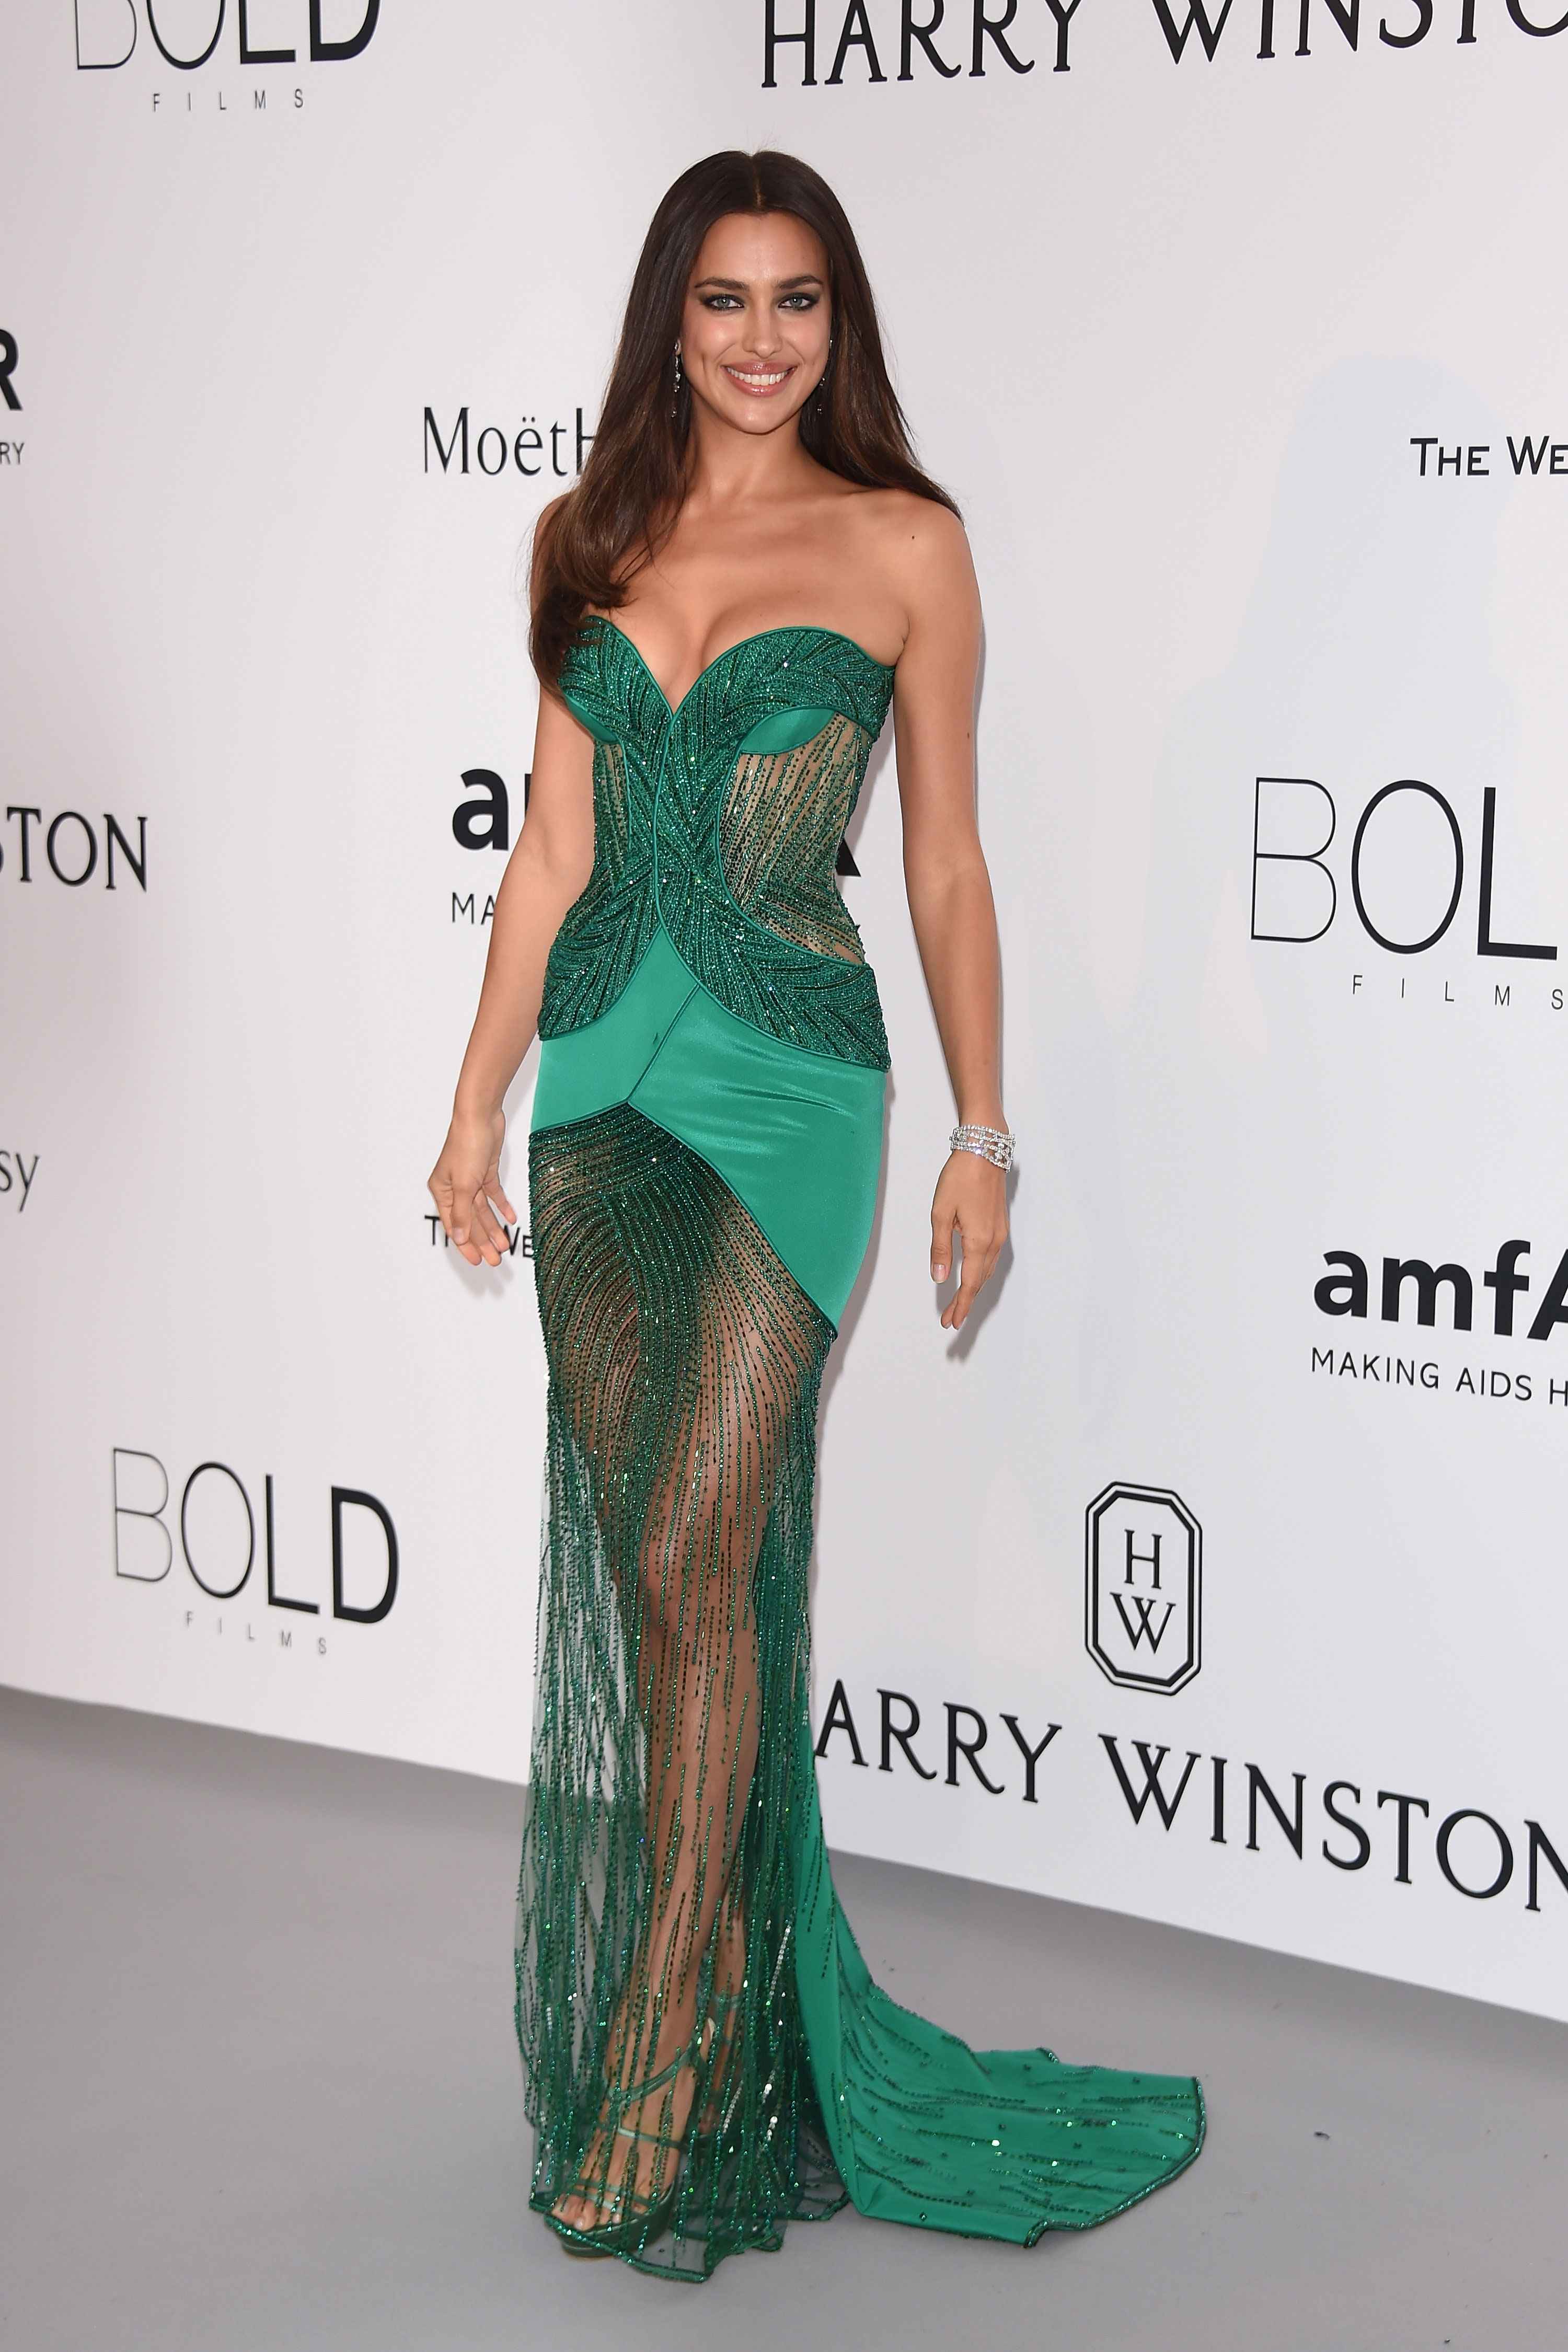 Irina Shayk attends amfAR's 22nd Cinema Against AIDS Gala at the Cannes Film Festival.